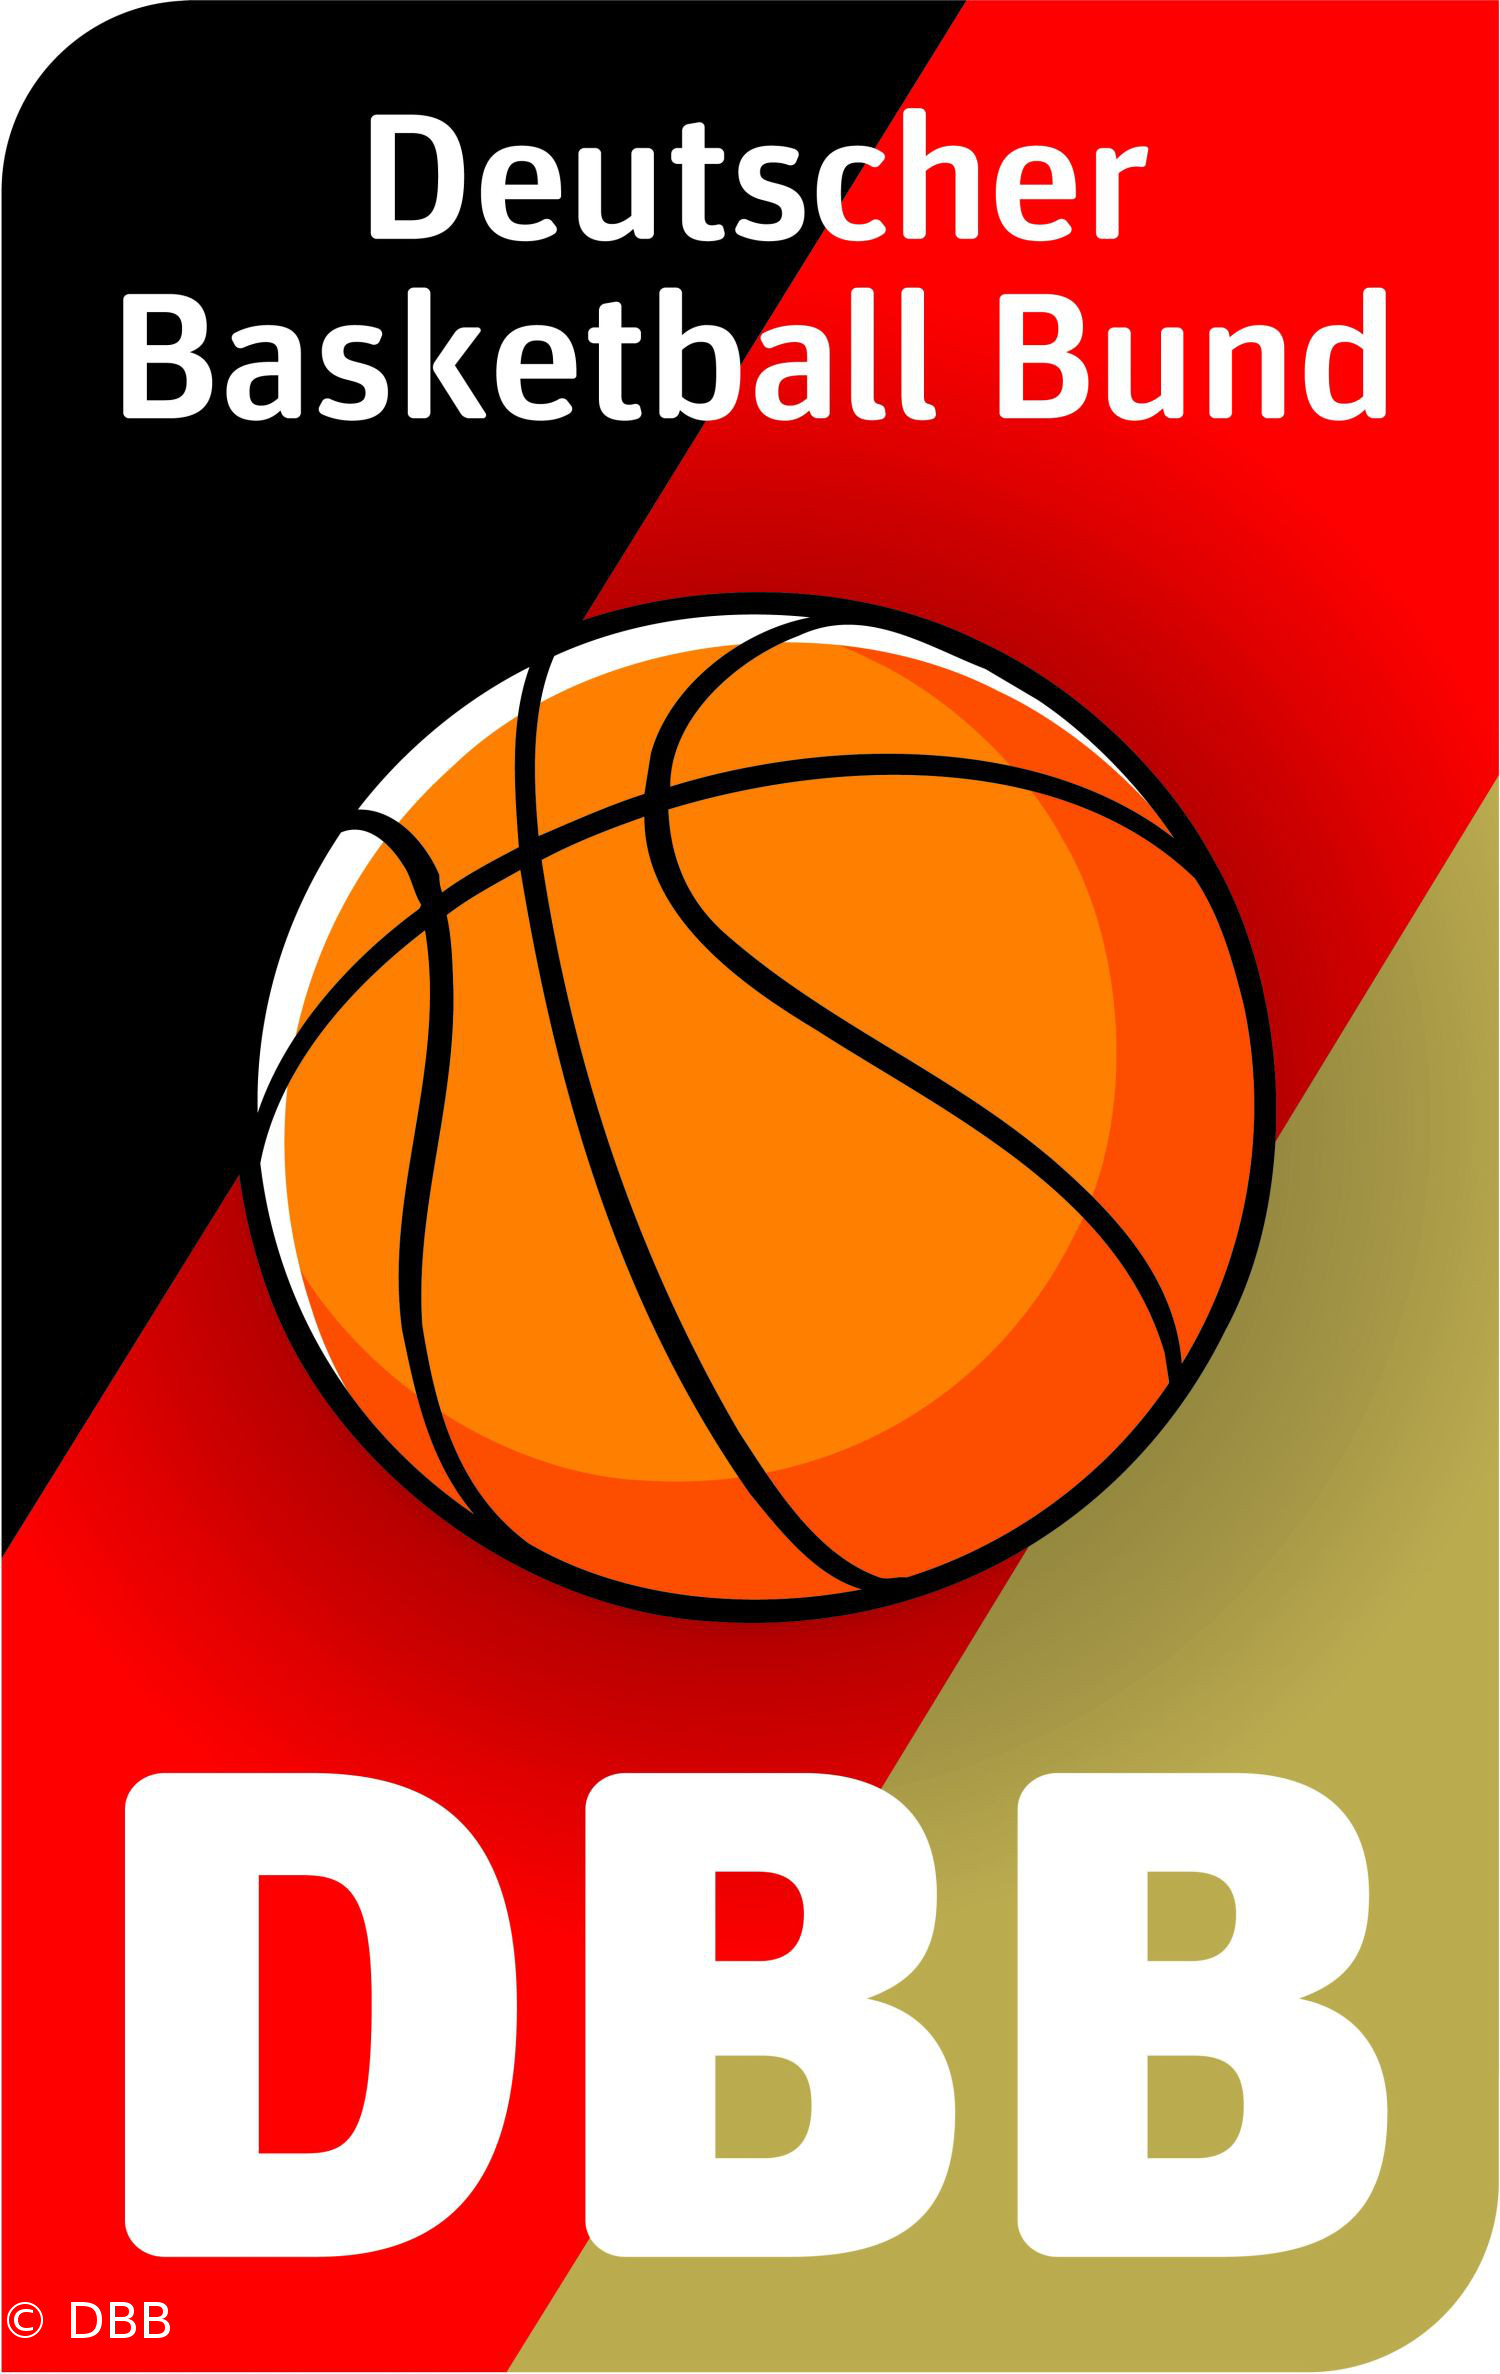 DBB nominiert Herren-Nationalmannschaft